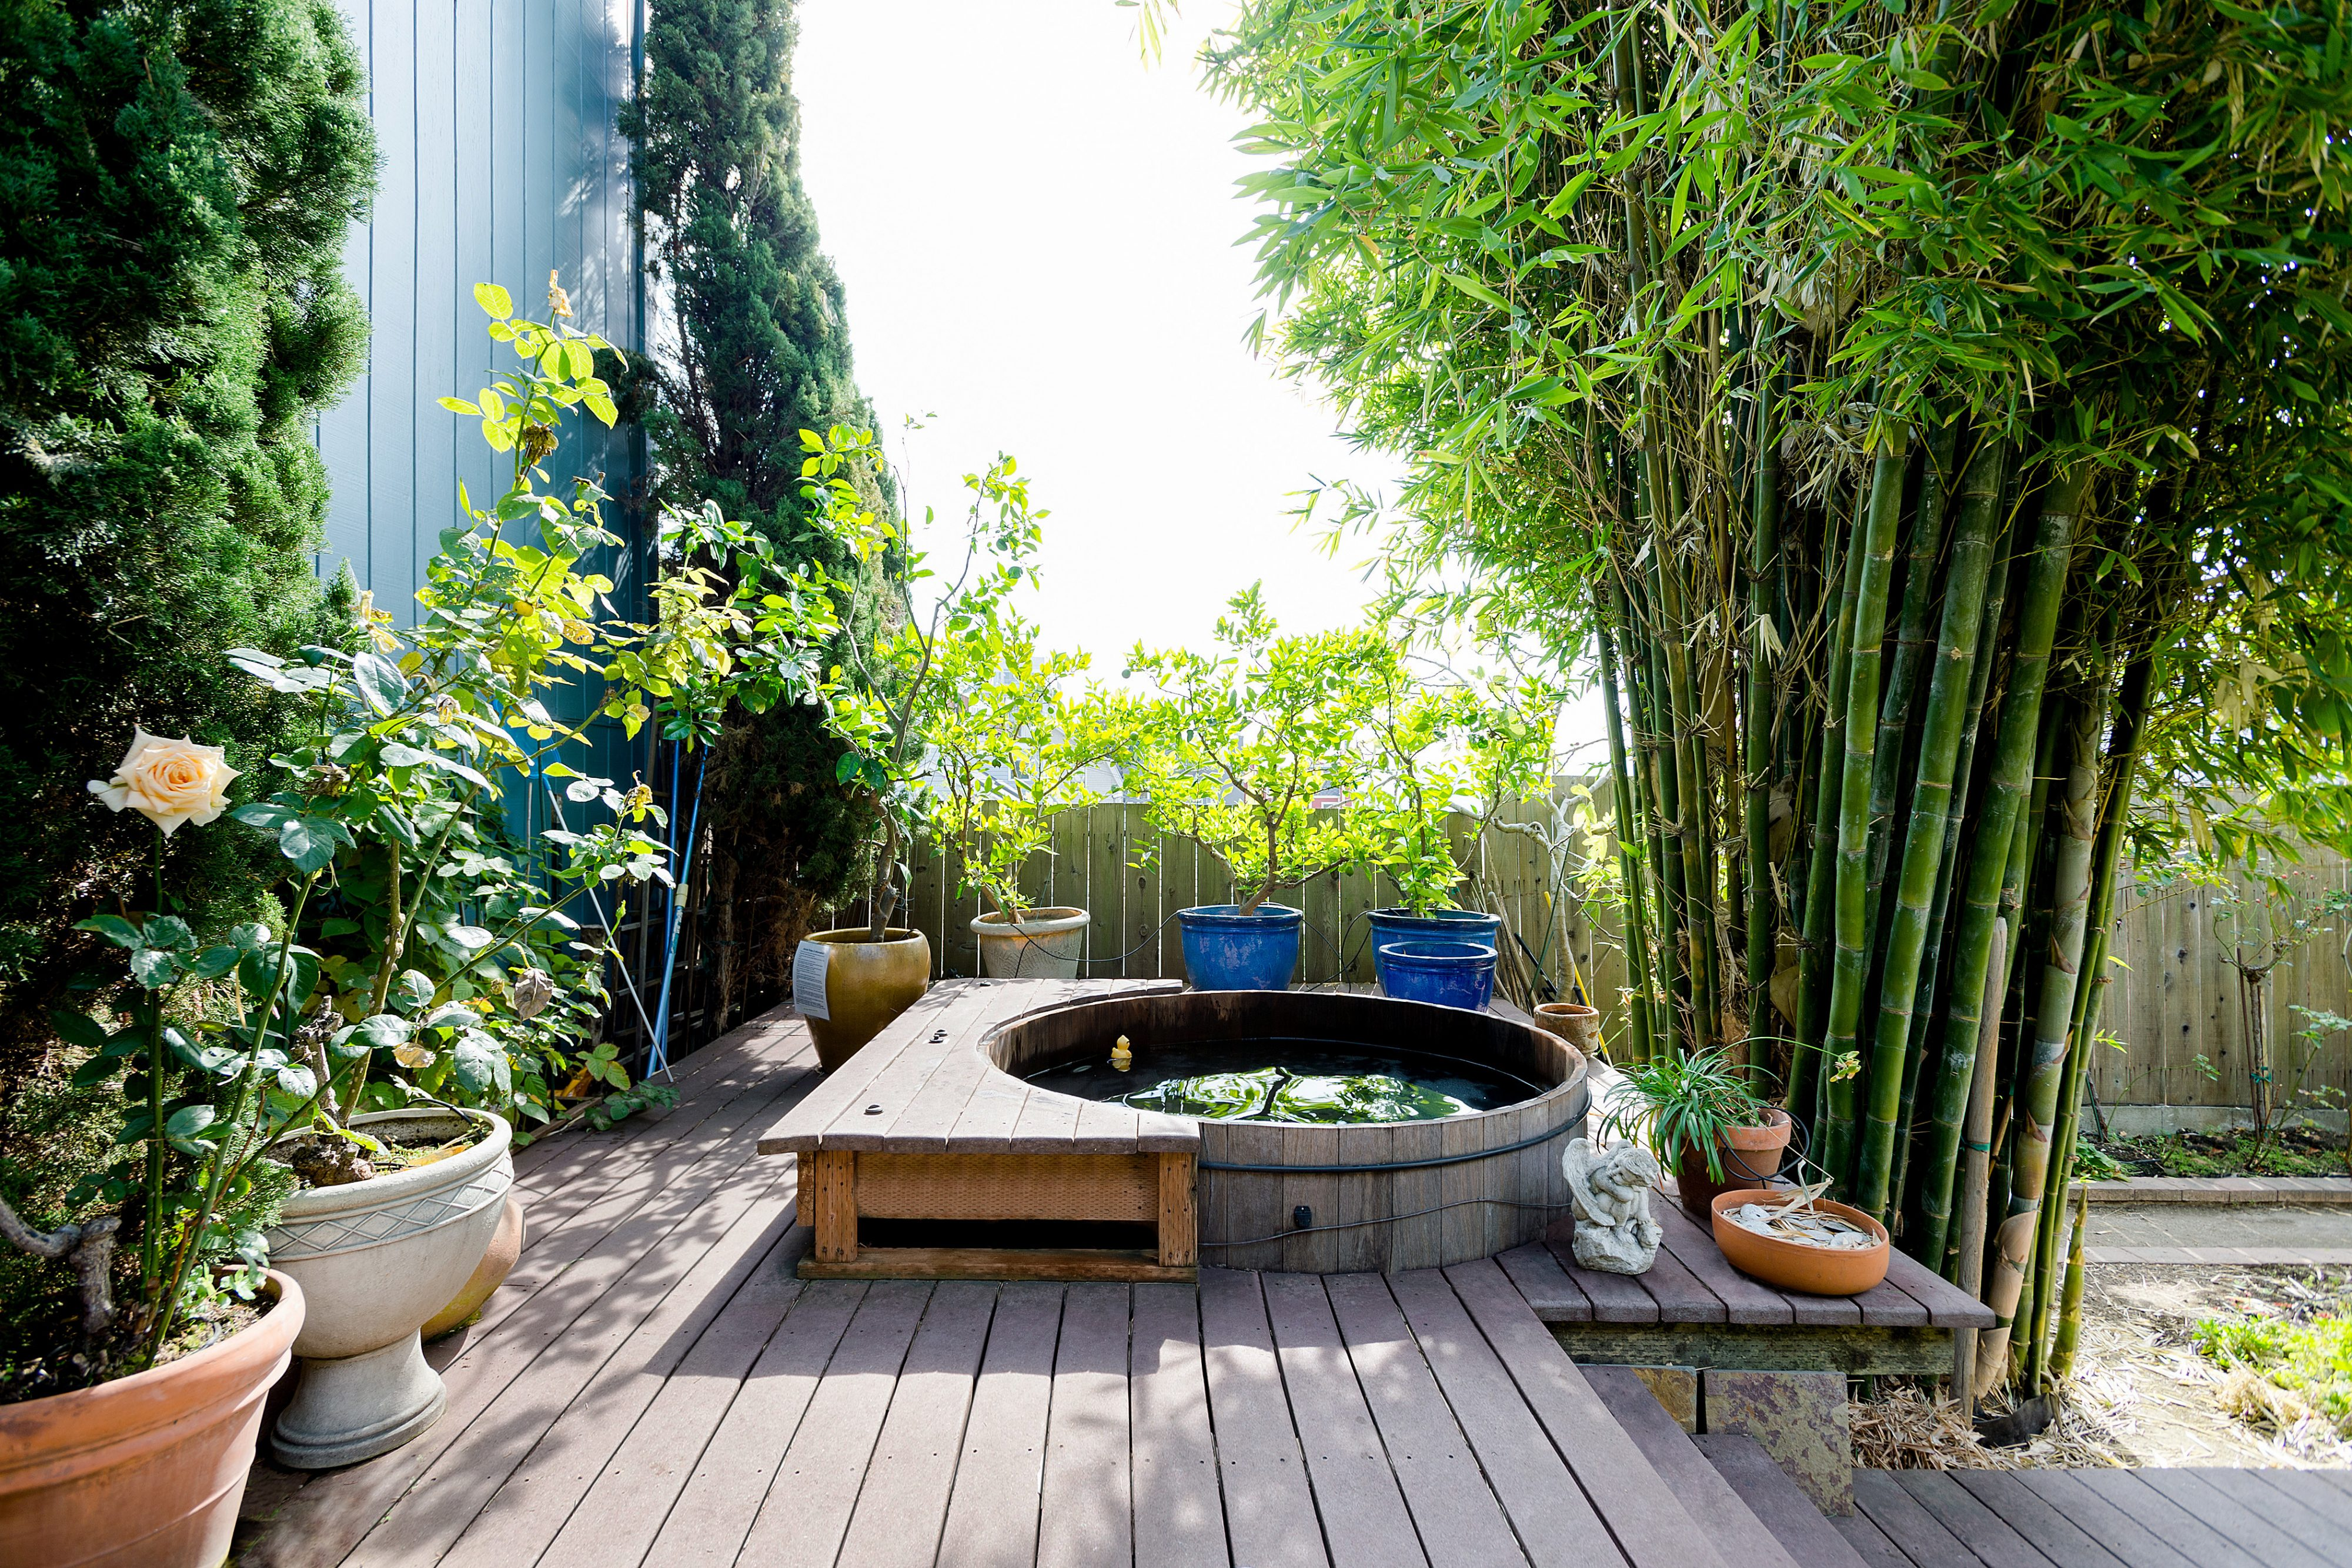 outdoor wooden hot tub surrounded by bamboo and plants